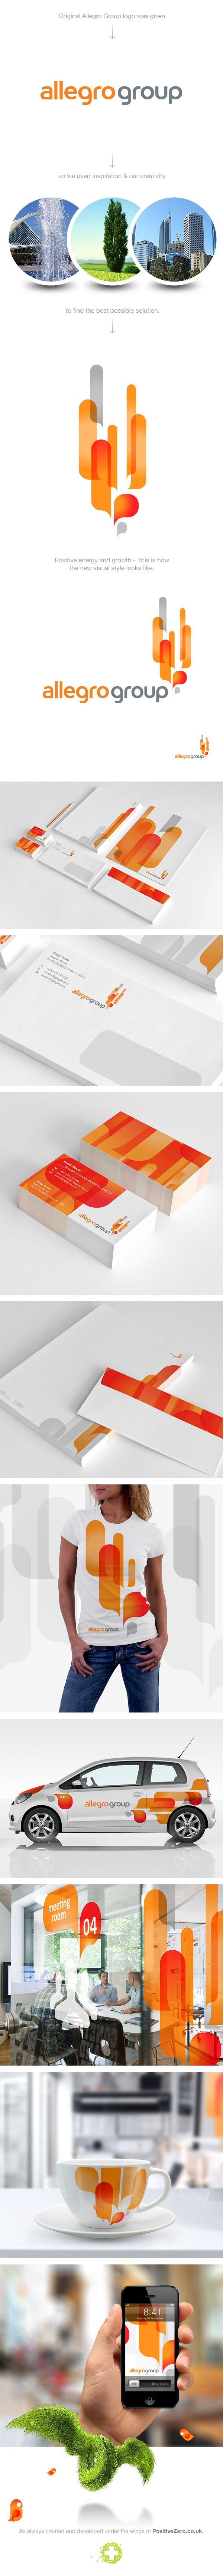 Allegro Group - Corporate Identity by PositiveZero.co.uk